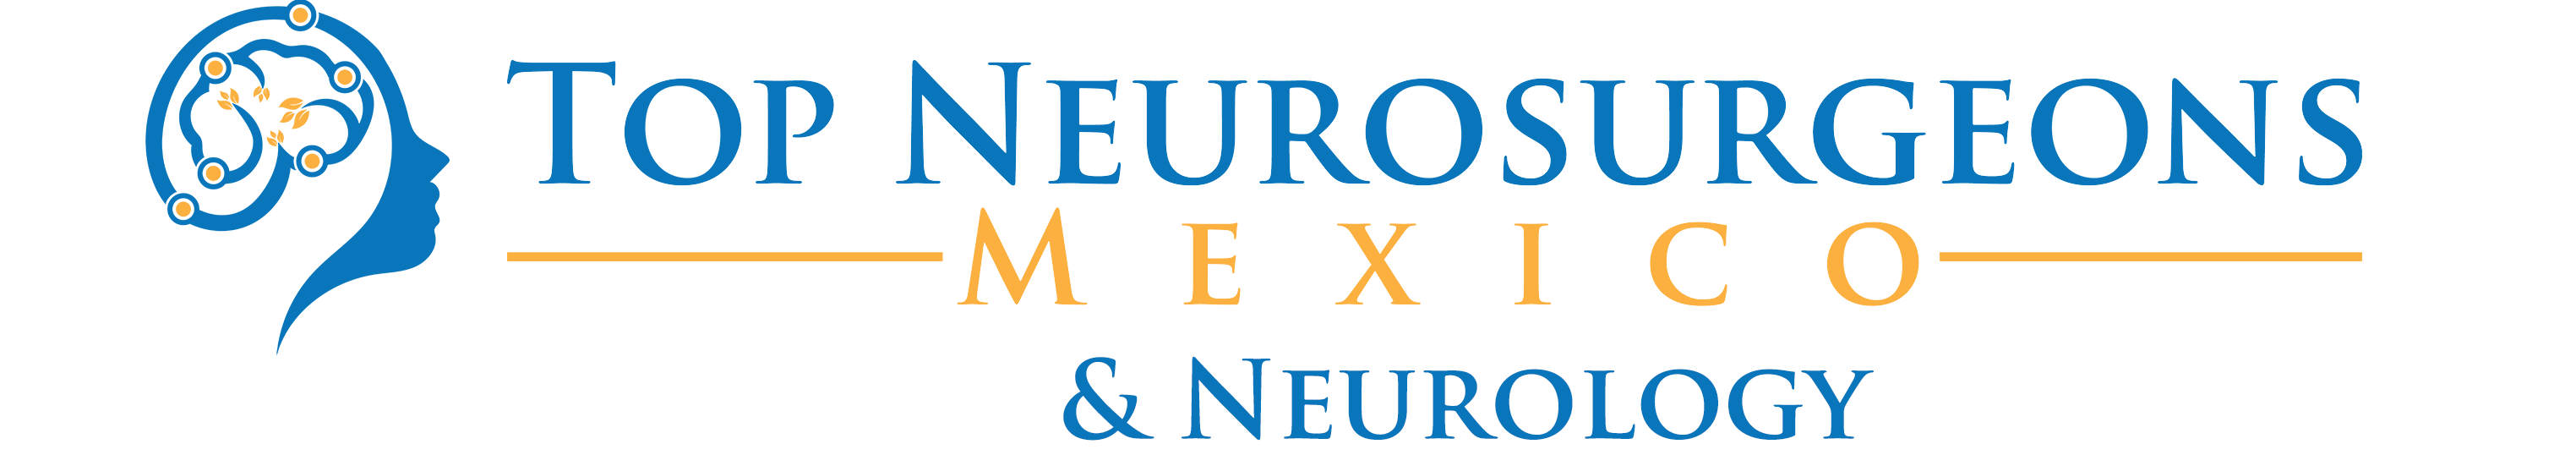 Top Neurosurgeons in Mexico